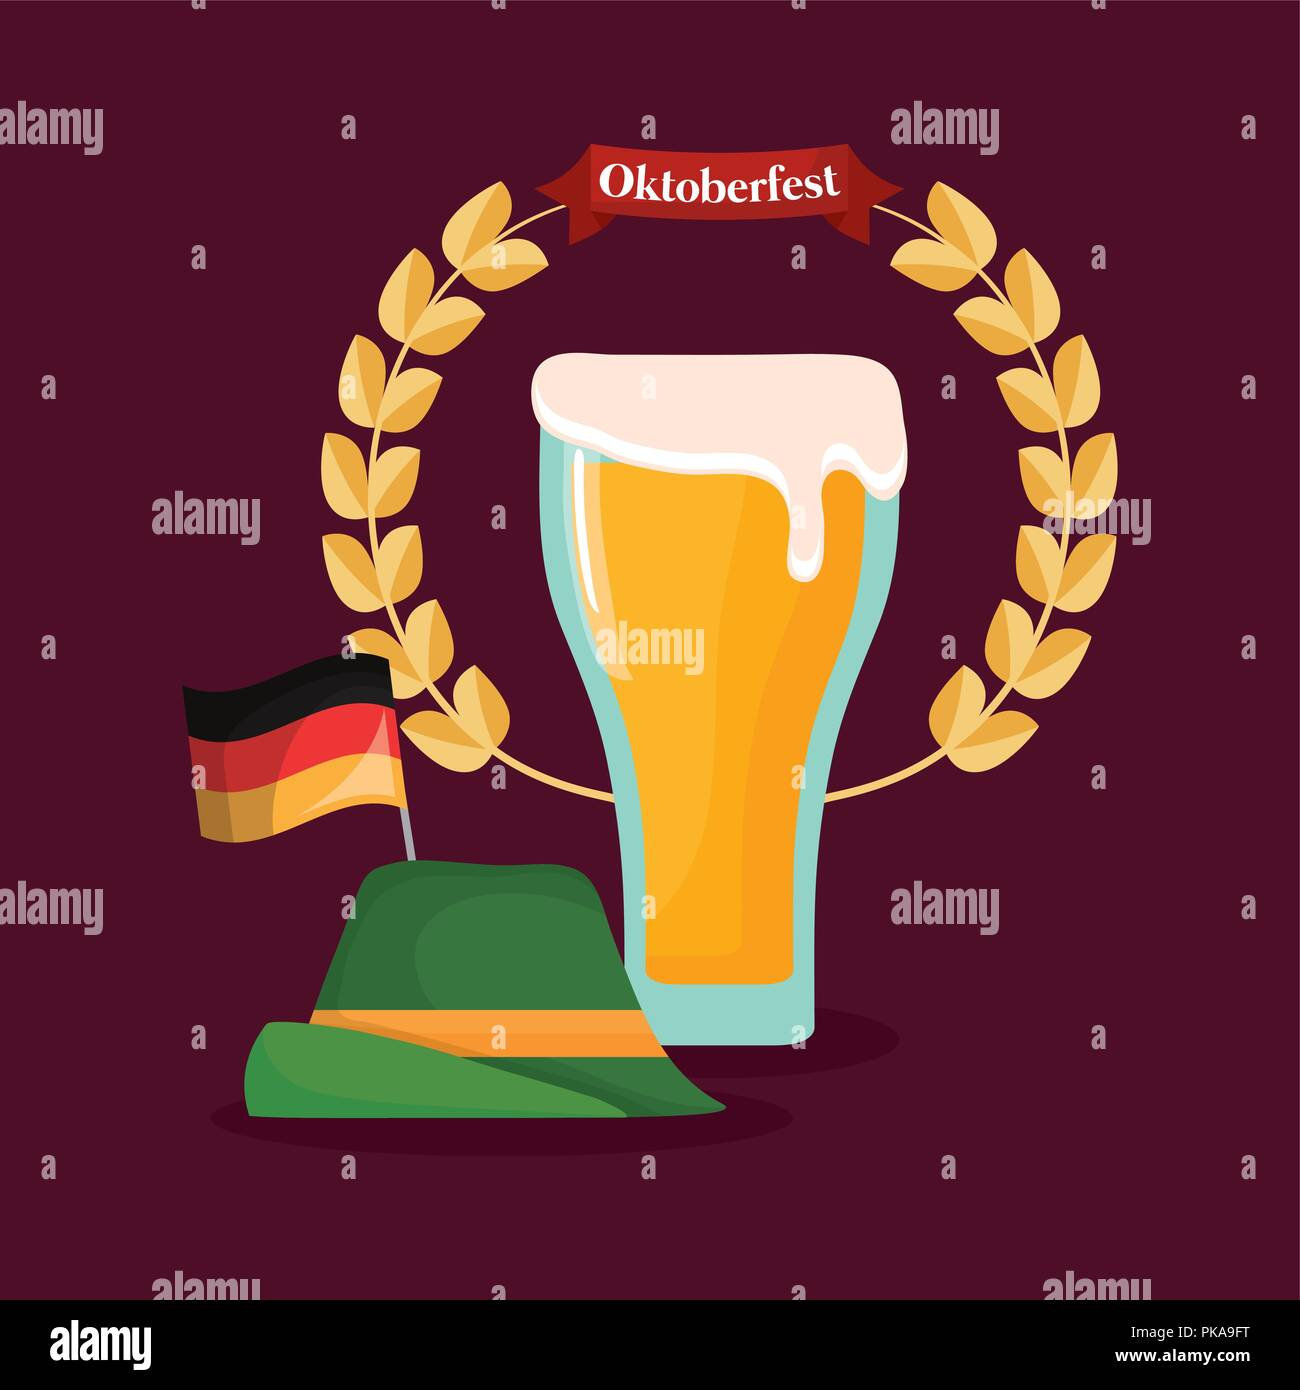 oktoberfest label with beer jar vector illustration design - Stock Image